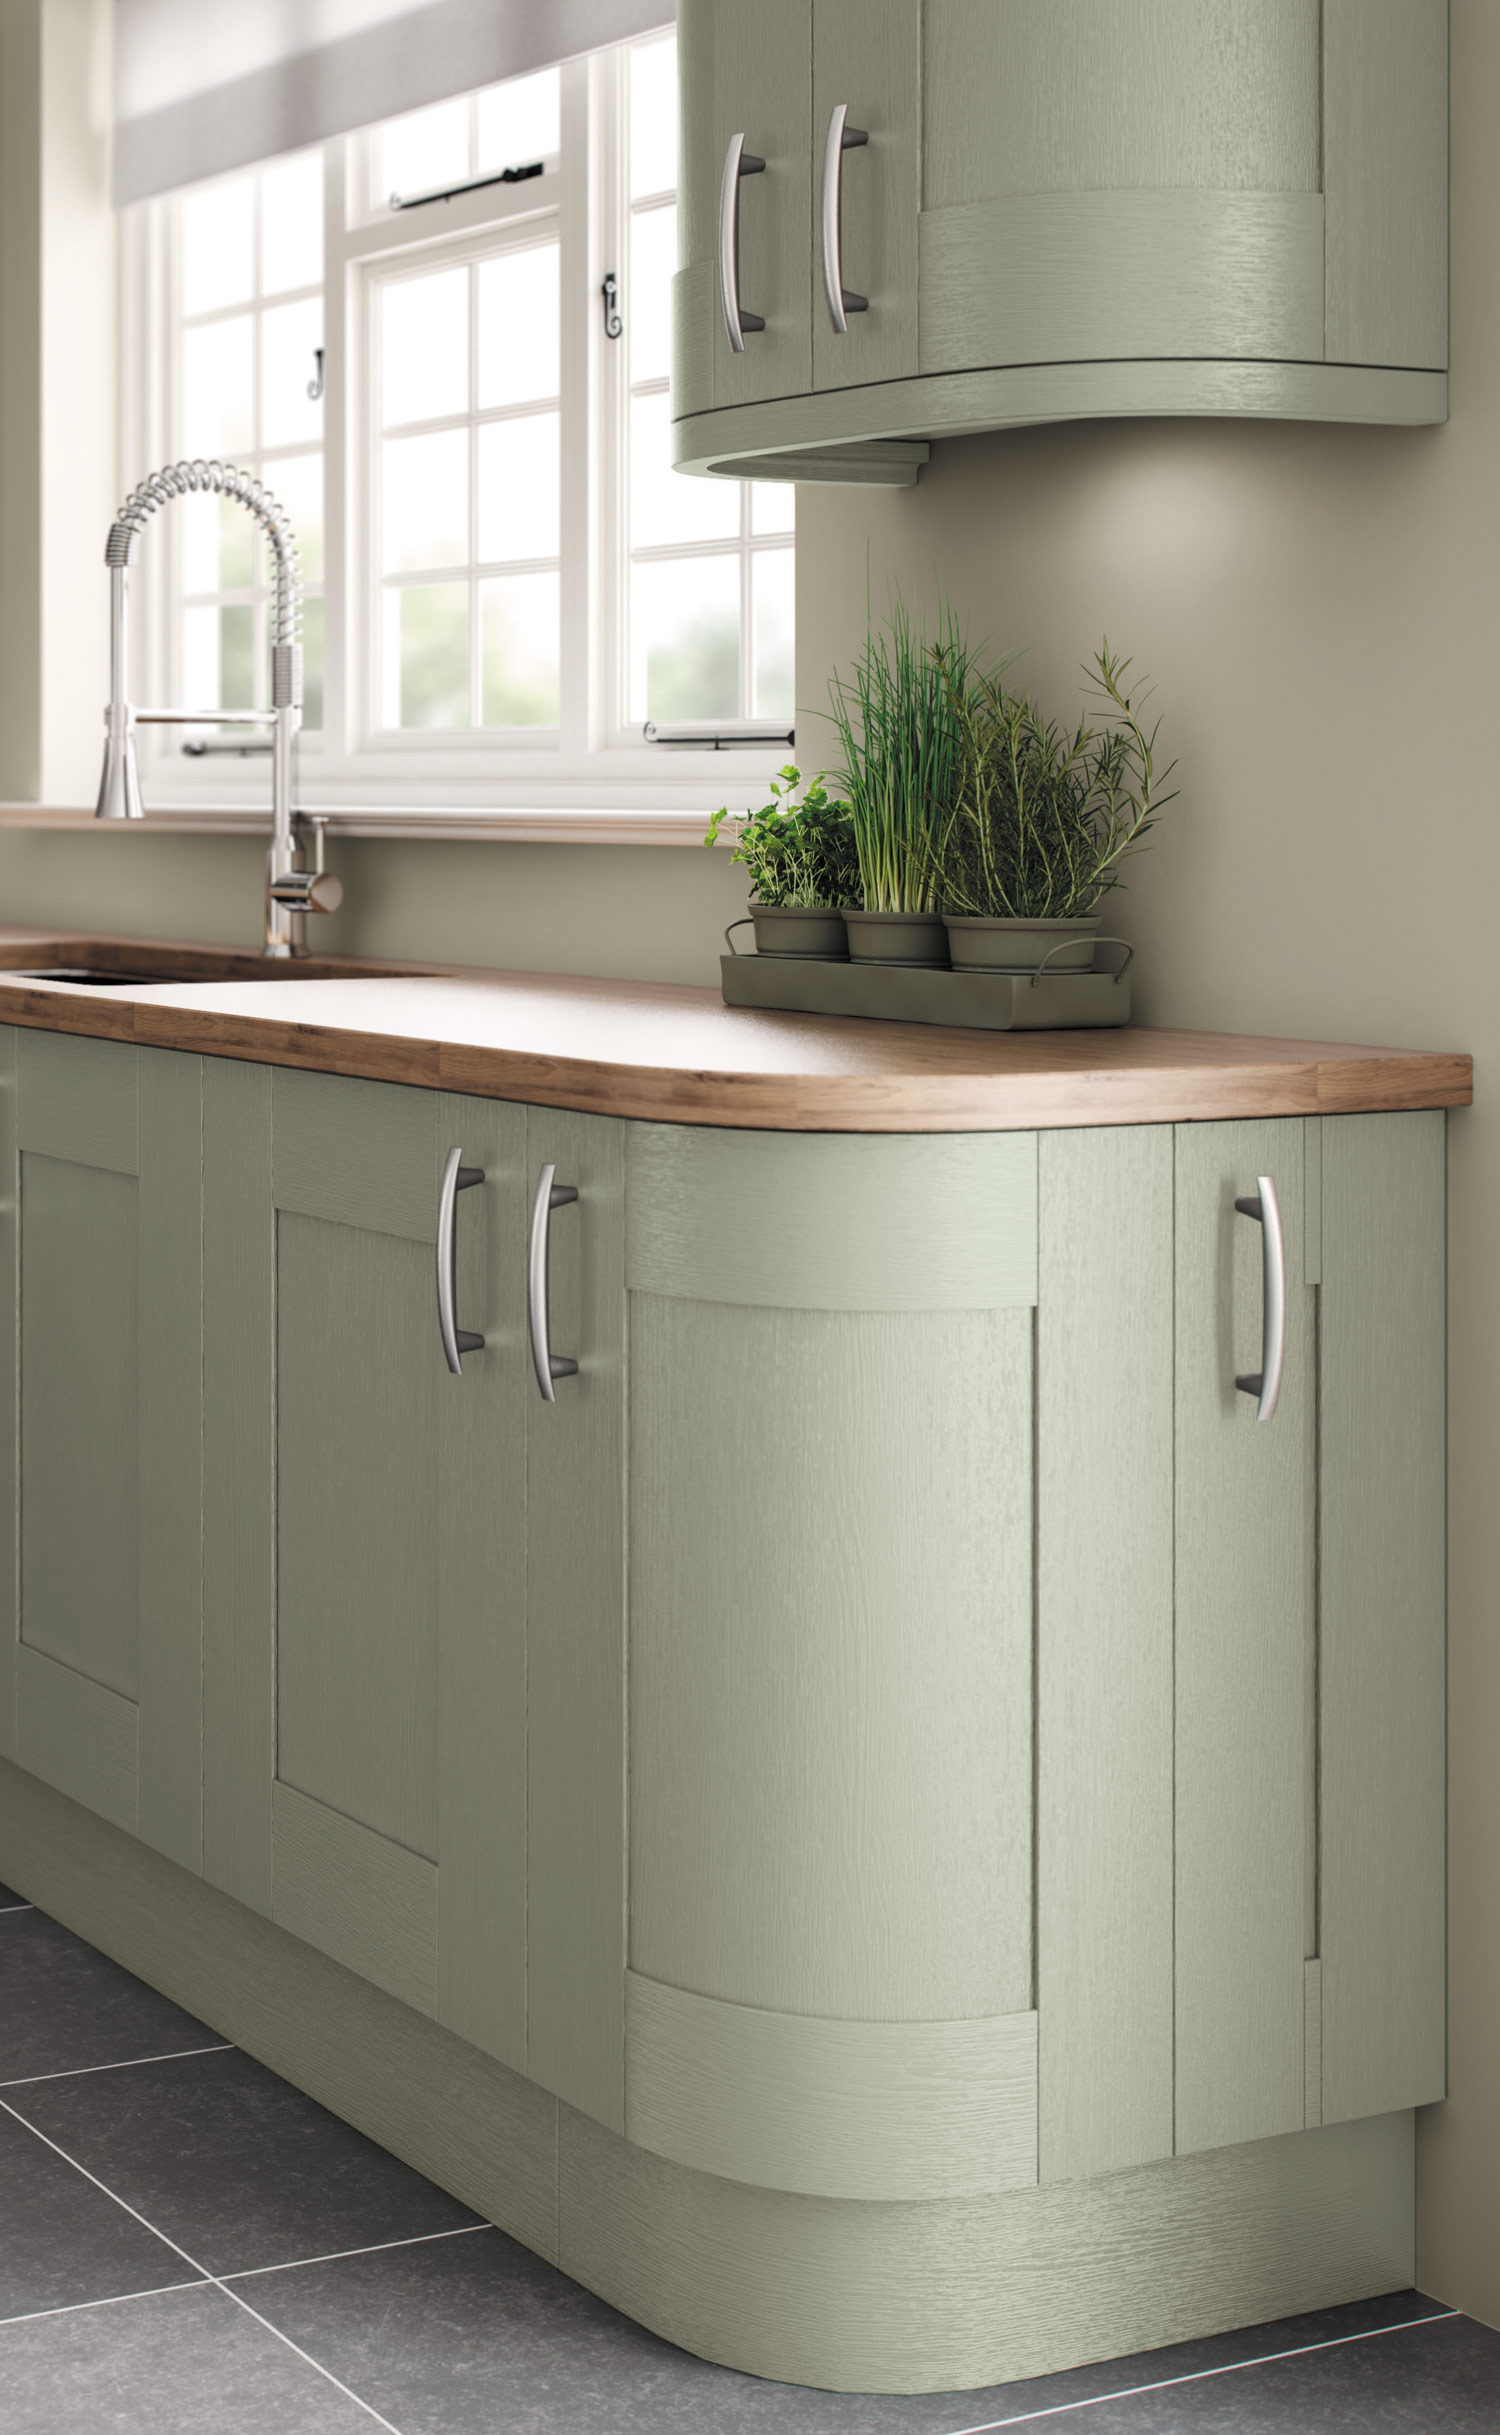 Fairford painted sage green pebble kitchens for Sage green kitchen units